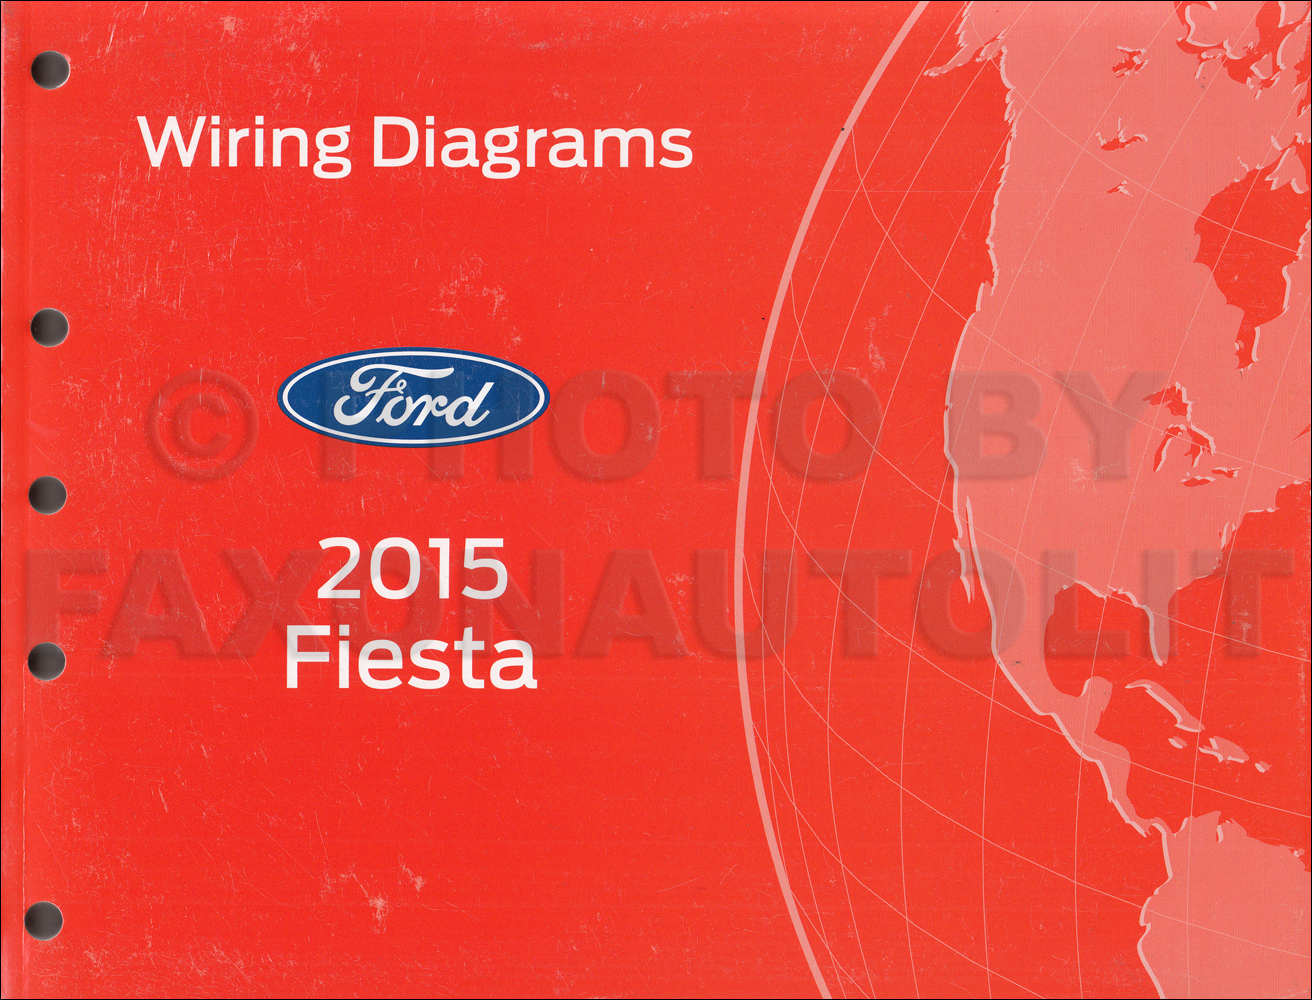 2010 Focus Wiring Diagram Top Engine Fuse Ford Uk 2013 Fiesta Radio Simple Rh David Huggett Co